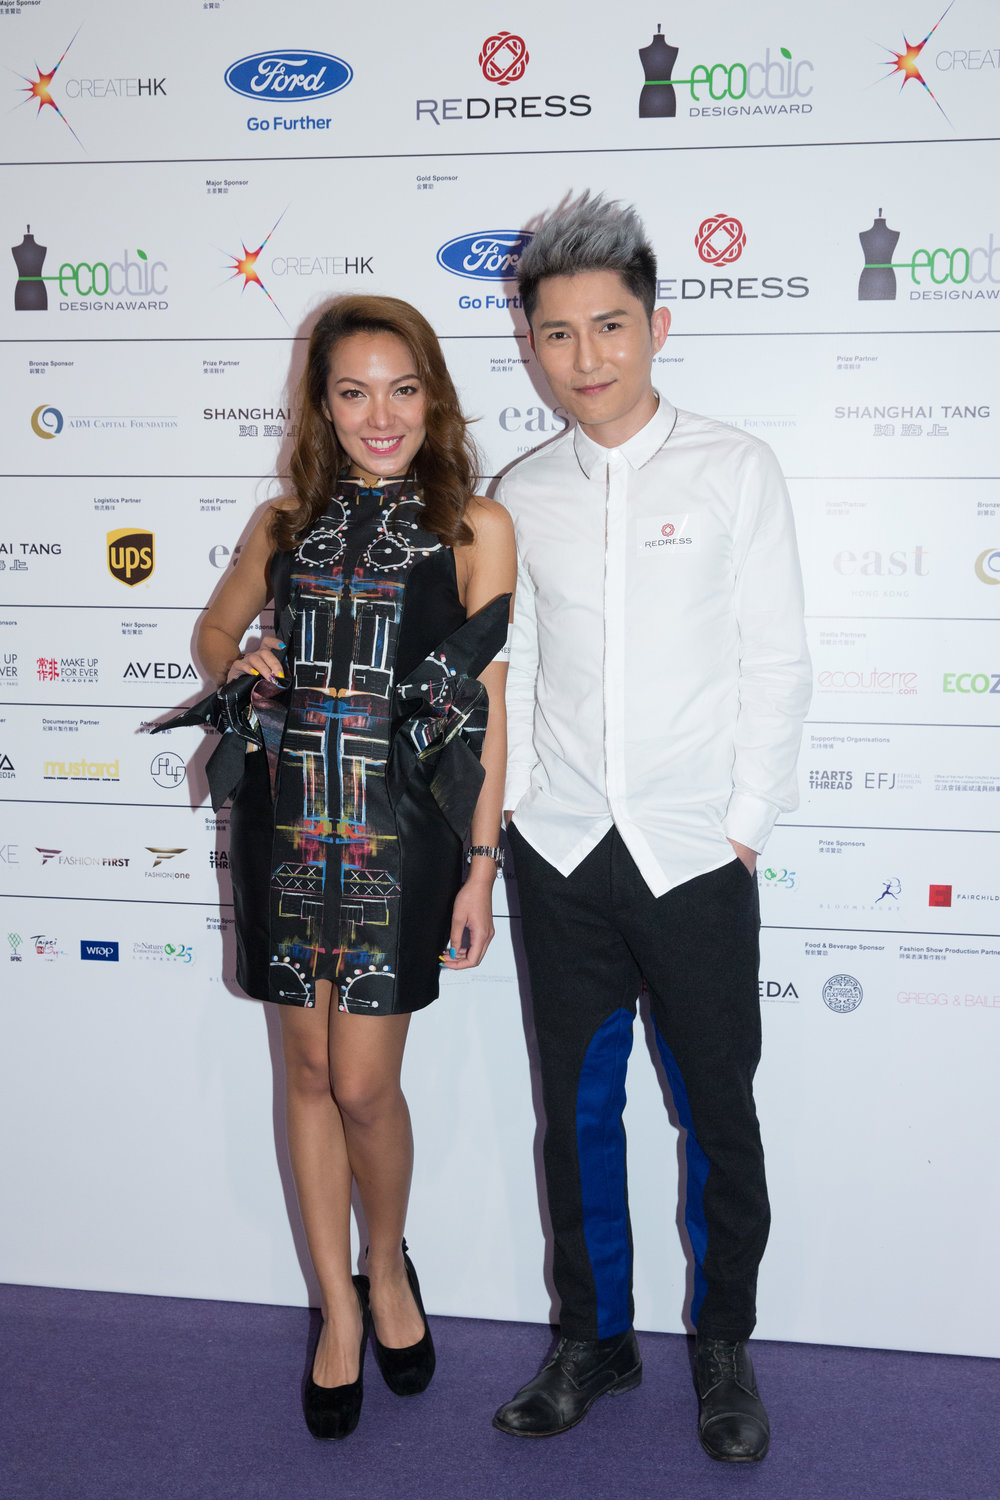 Hong Kong entertainers Sarki Choy and Ryan Lau wear Angus Tsui and Wan & Wong Fashion to attend the EcoChic Design Award 2015/16 Grand Final